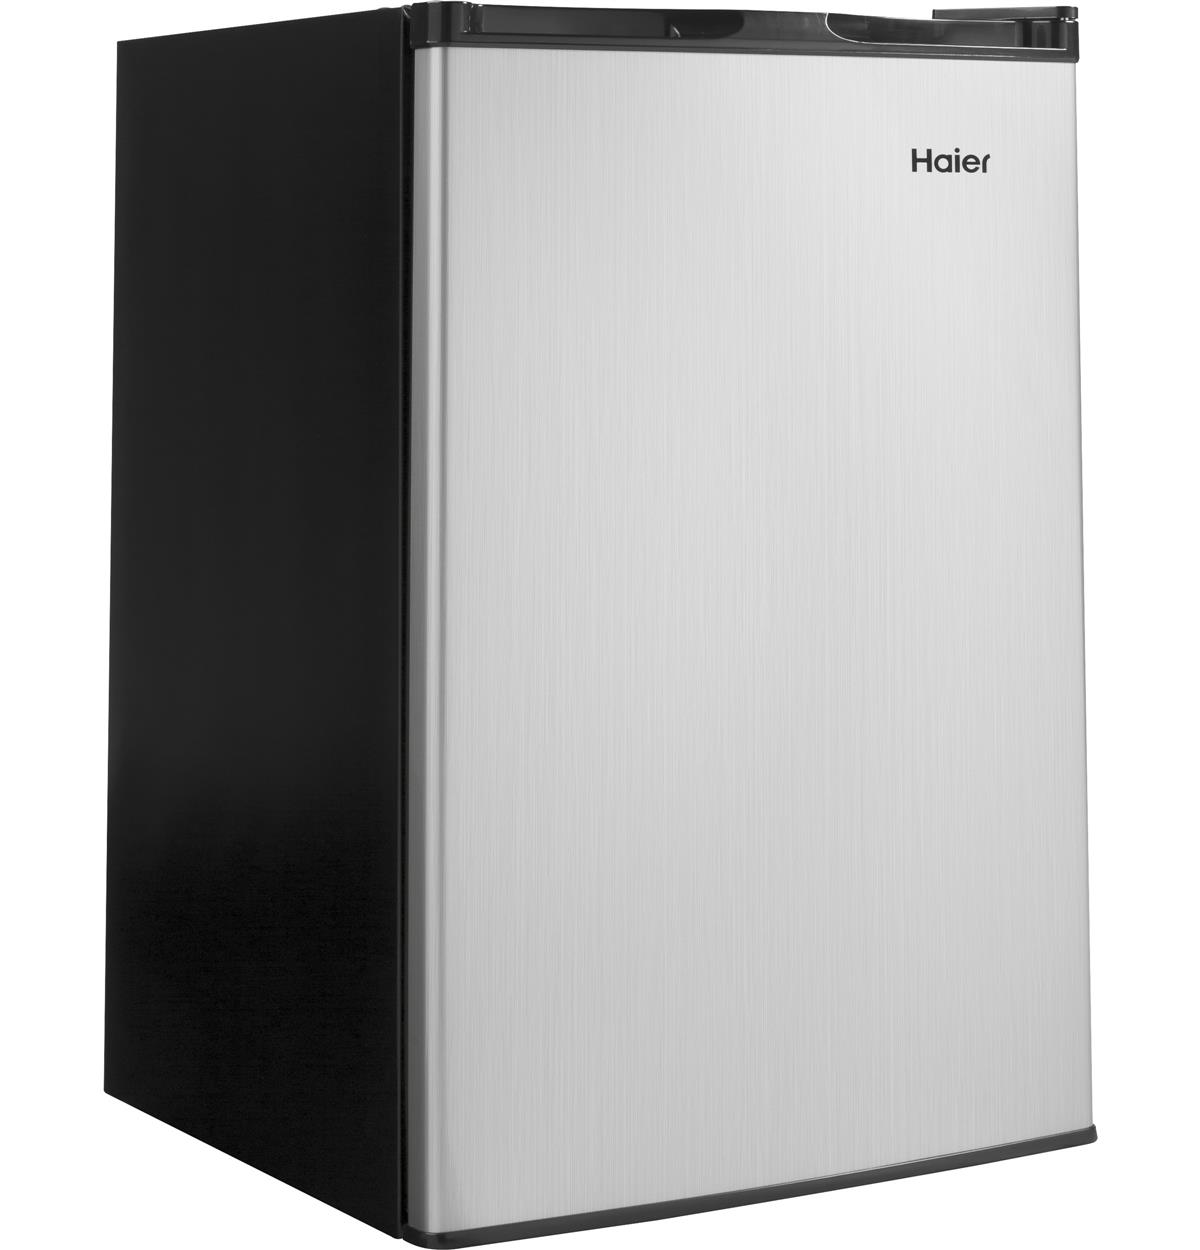 Virtual Steel Compact HC46SF10SV Un-installed/free-standing